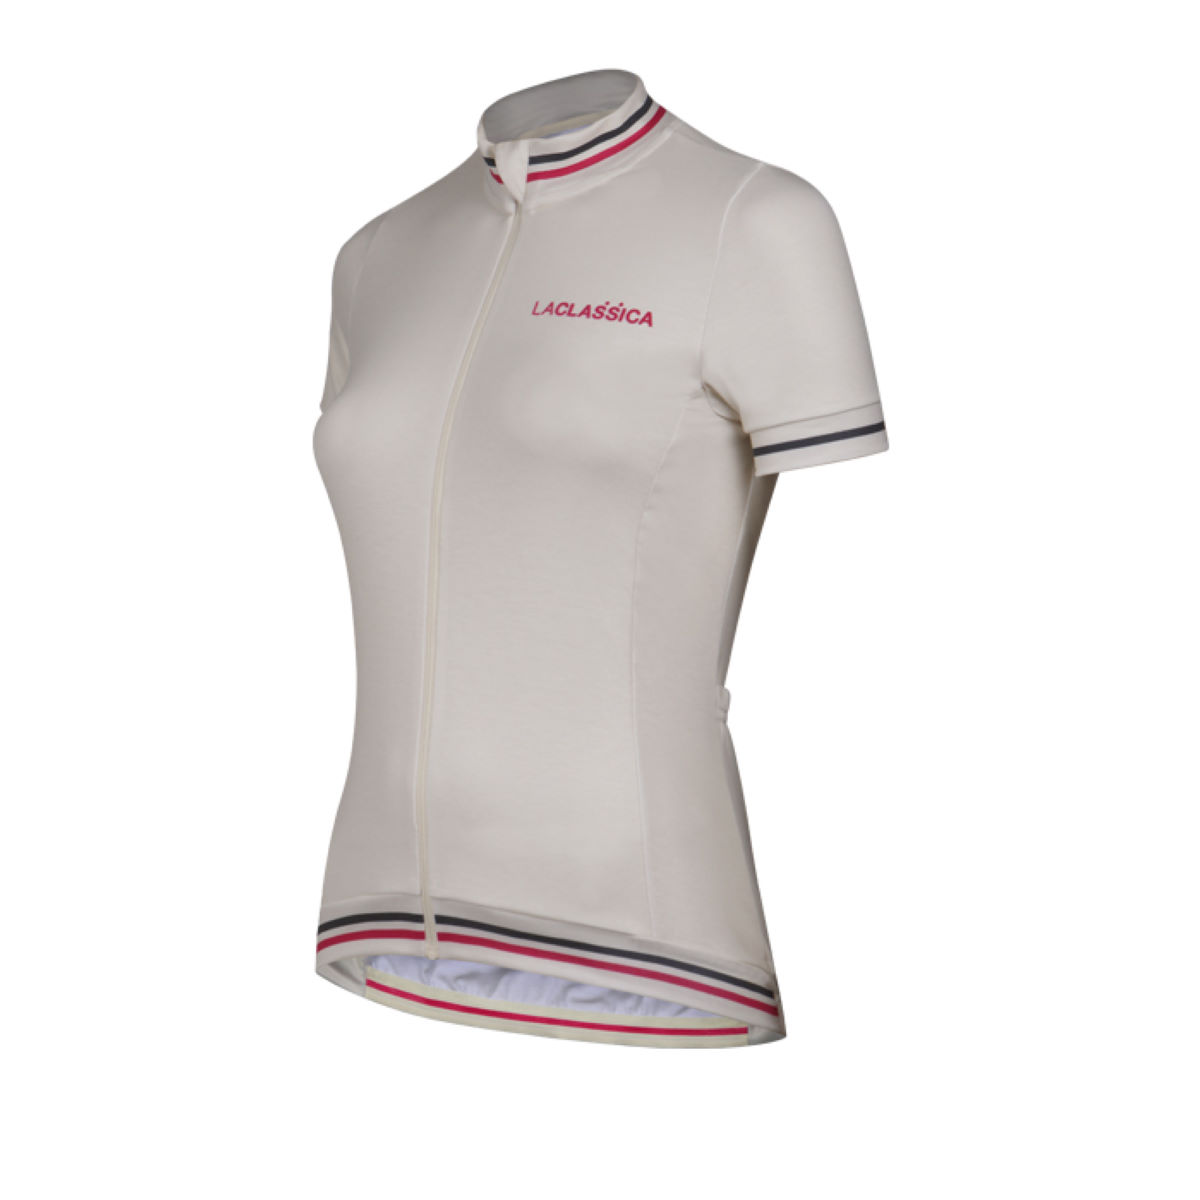 Maillot Femme LaClassica Vintage - M Ivory Maillots